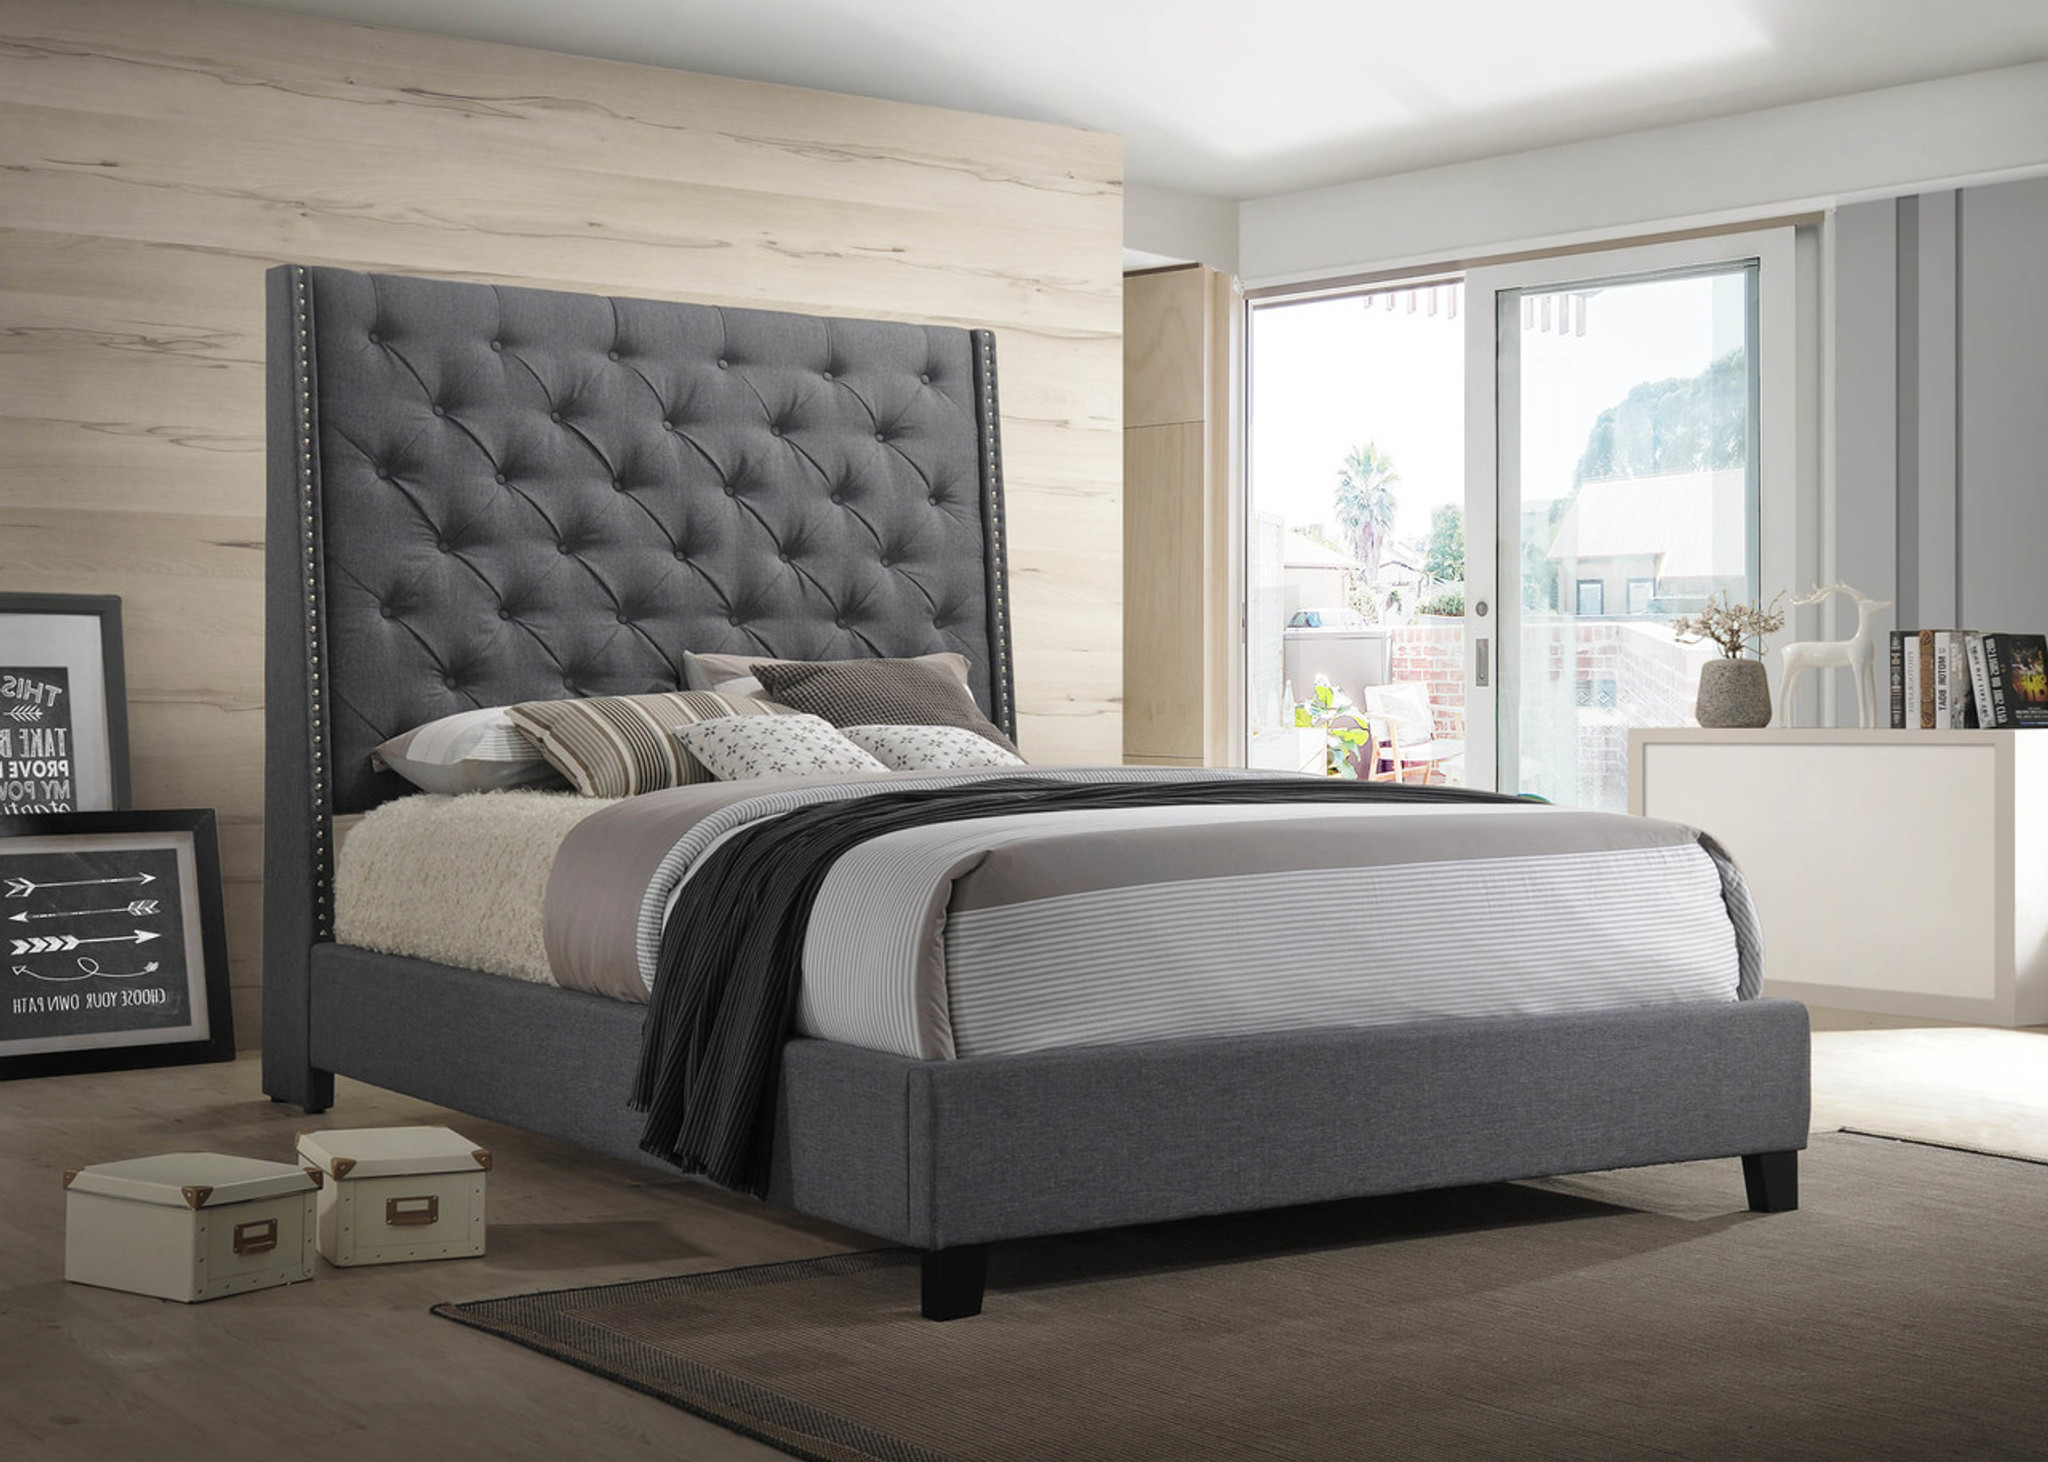 reputable site cac79 cc40d CHANTILLY BED IN GRAY TALL TUFTED HEADBOARD